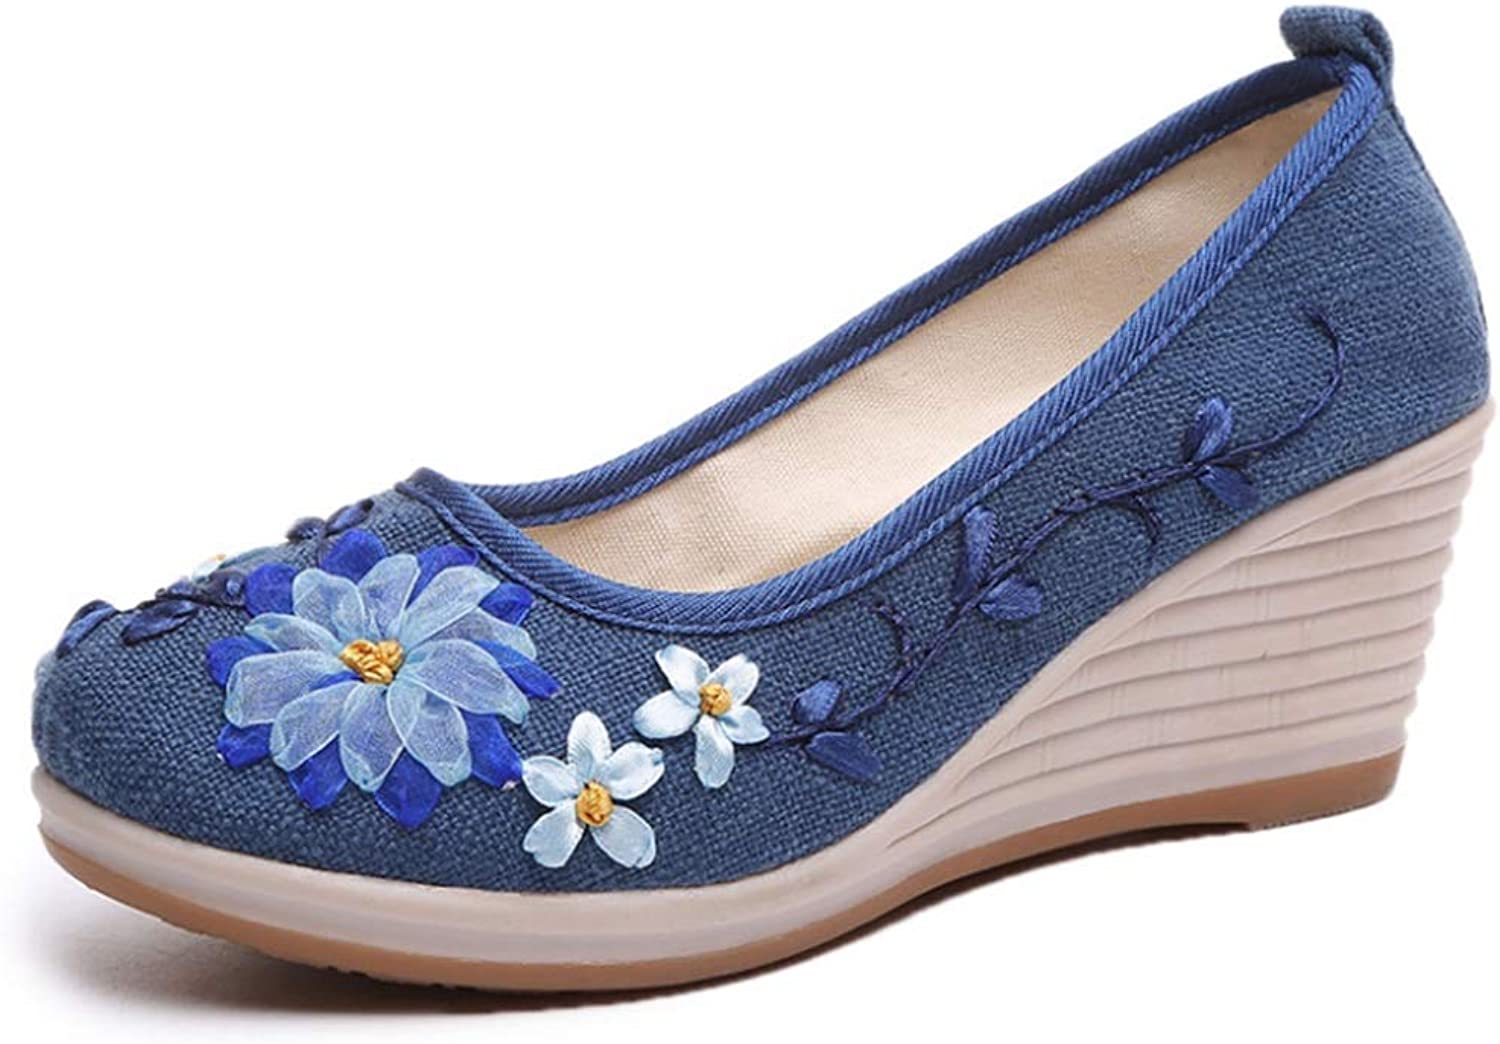 Embroidered shoes Old Beijing Cloth shoes White High-Heeled Women's shoes National Wind Cotton Linen shoes (color   bluee, Size   23.5)